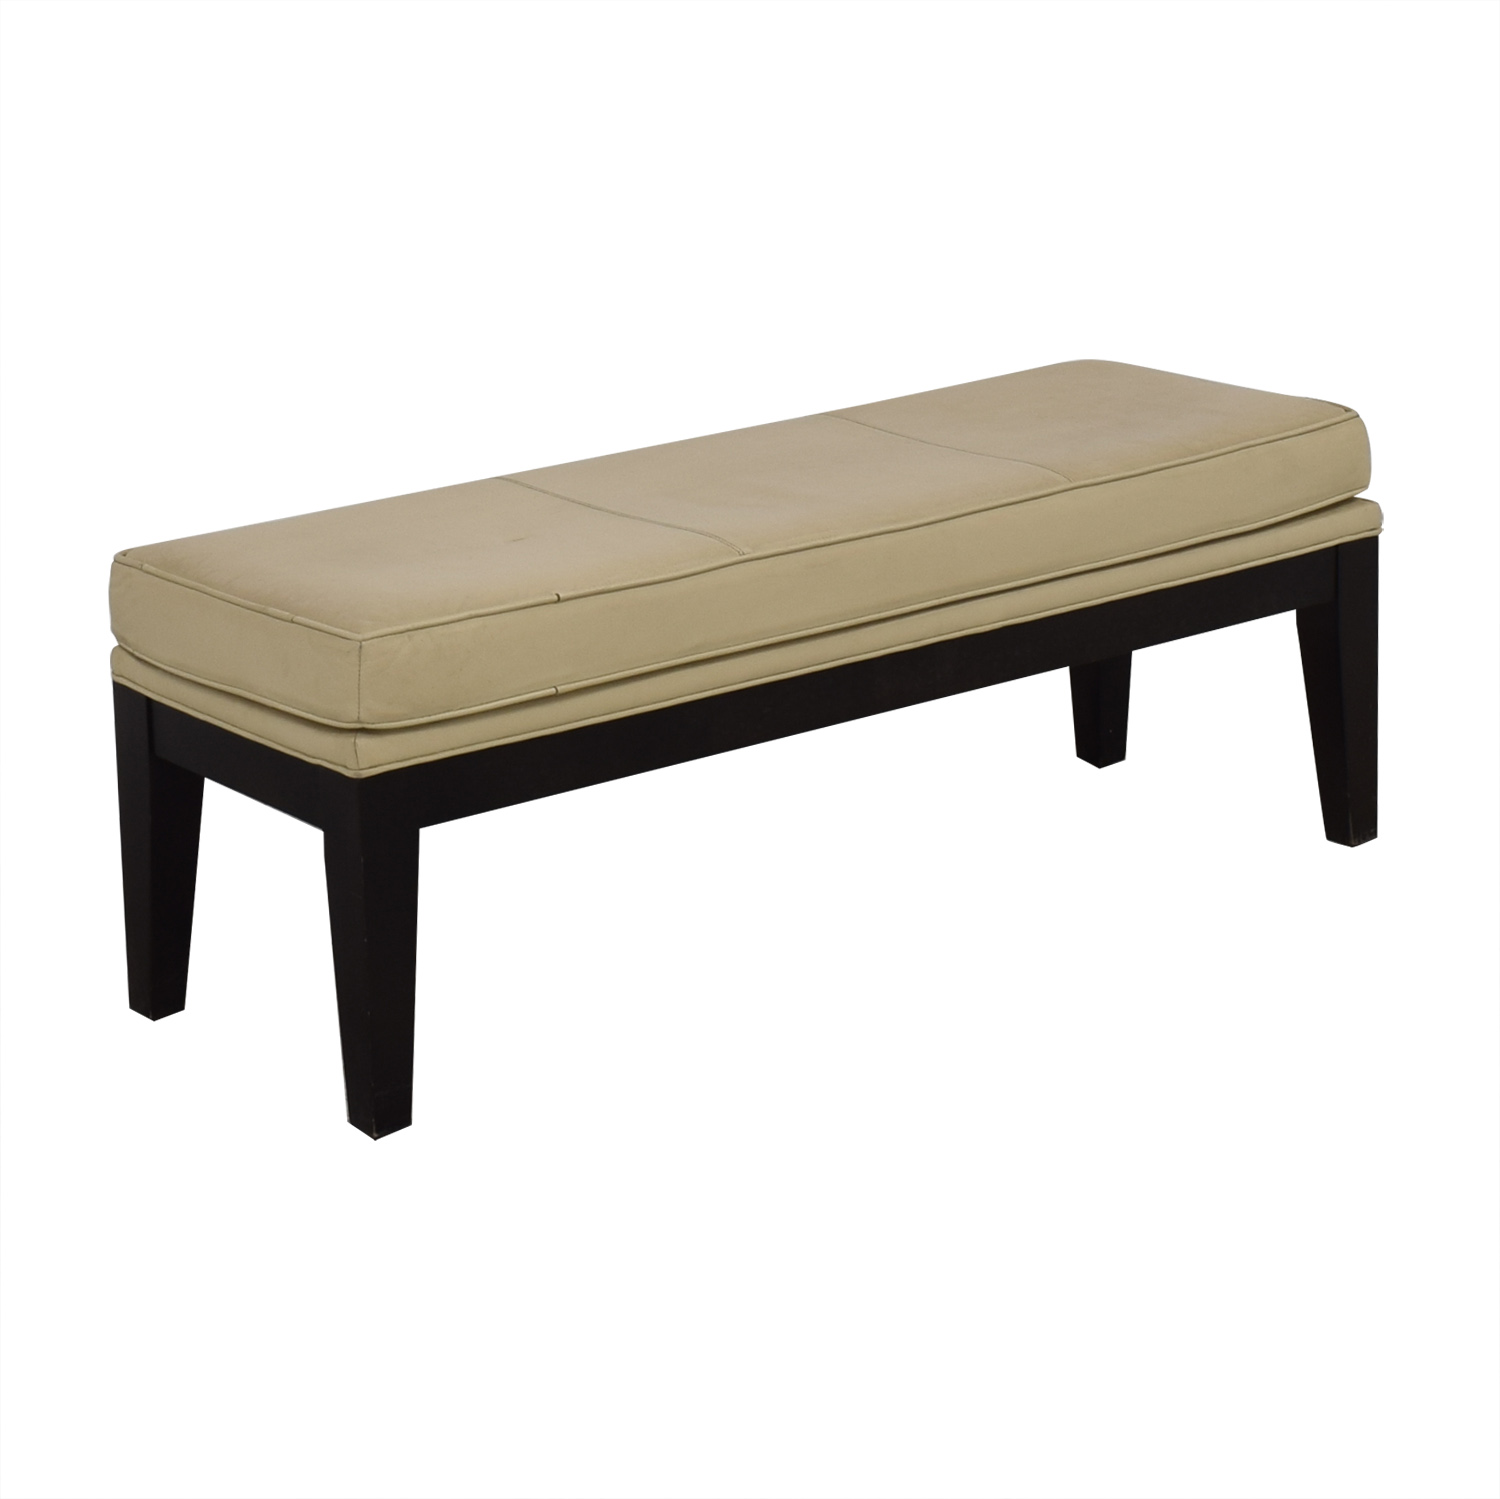 Neiman Marcus Neiman Marcus Upholstered Bench for sale